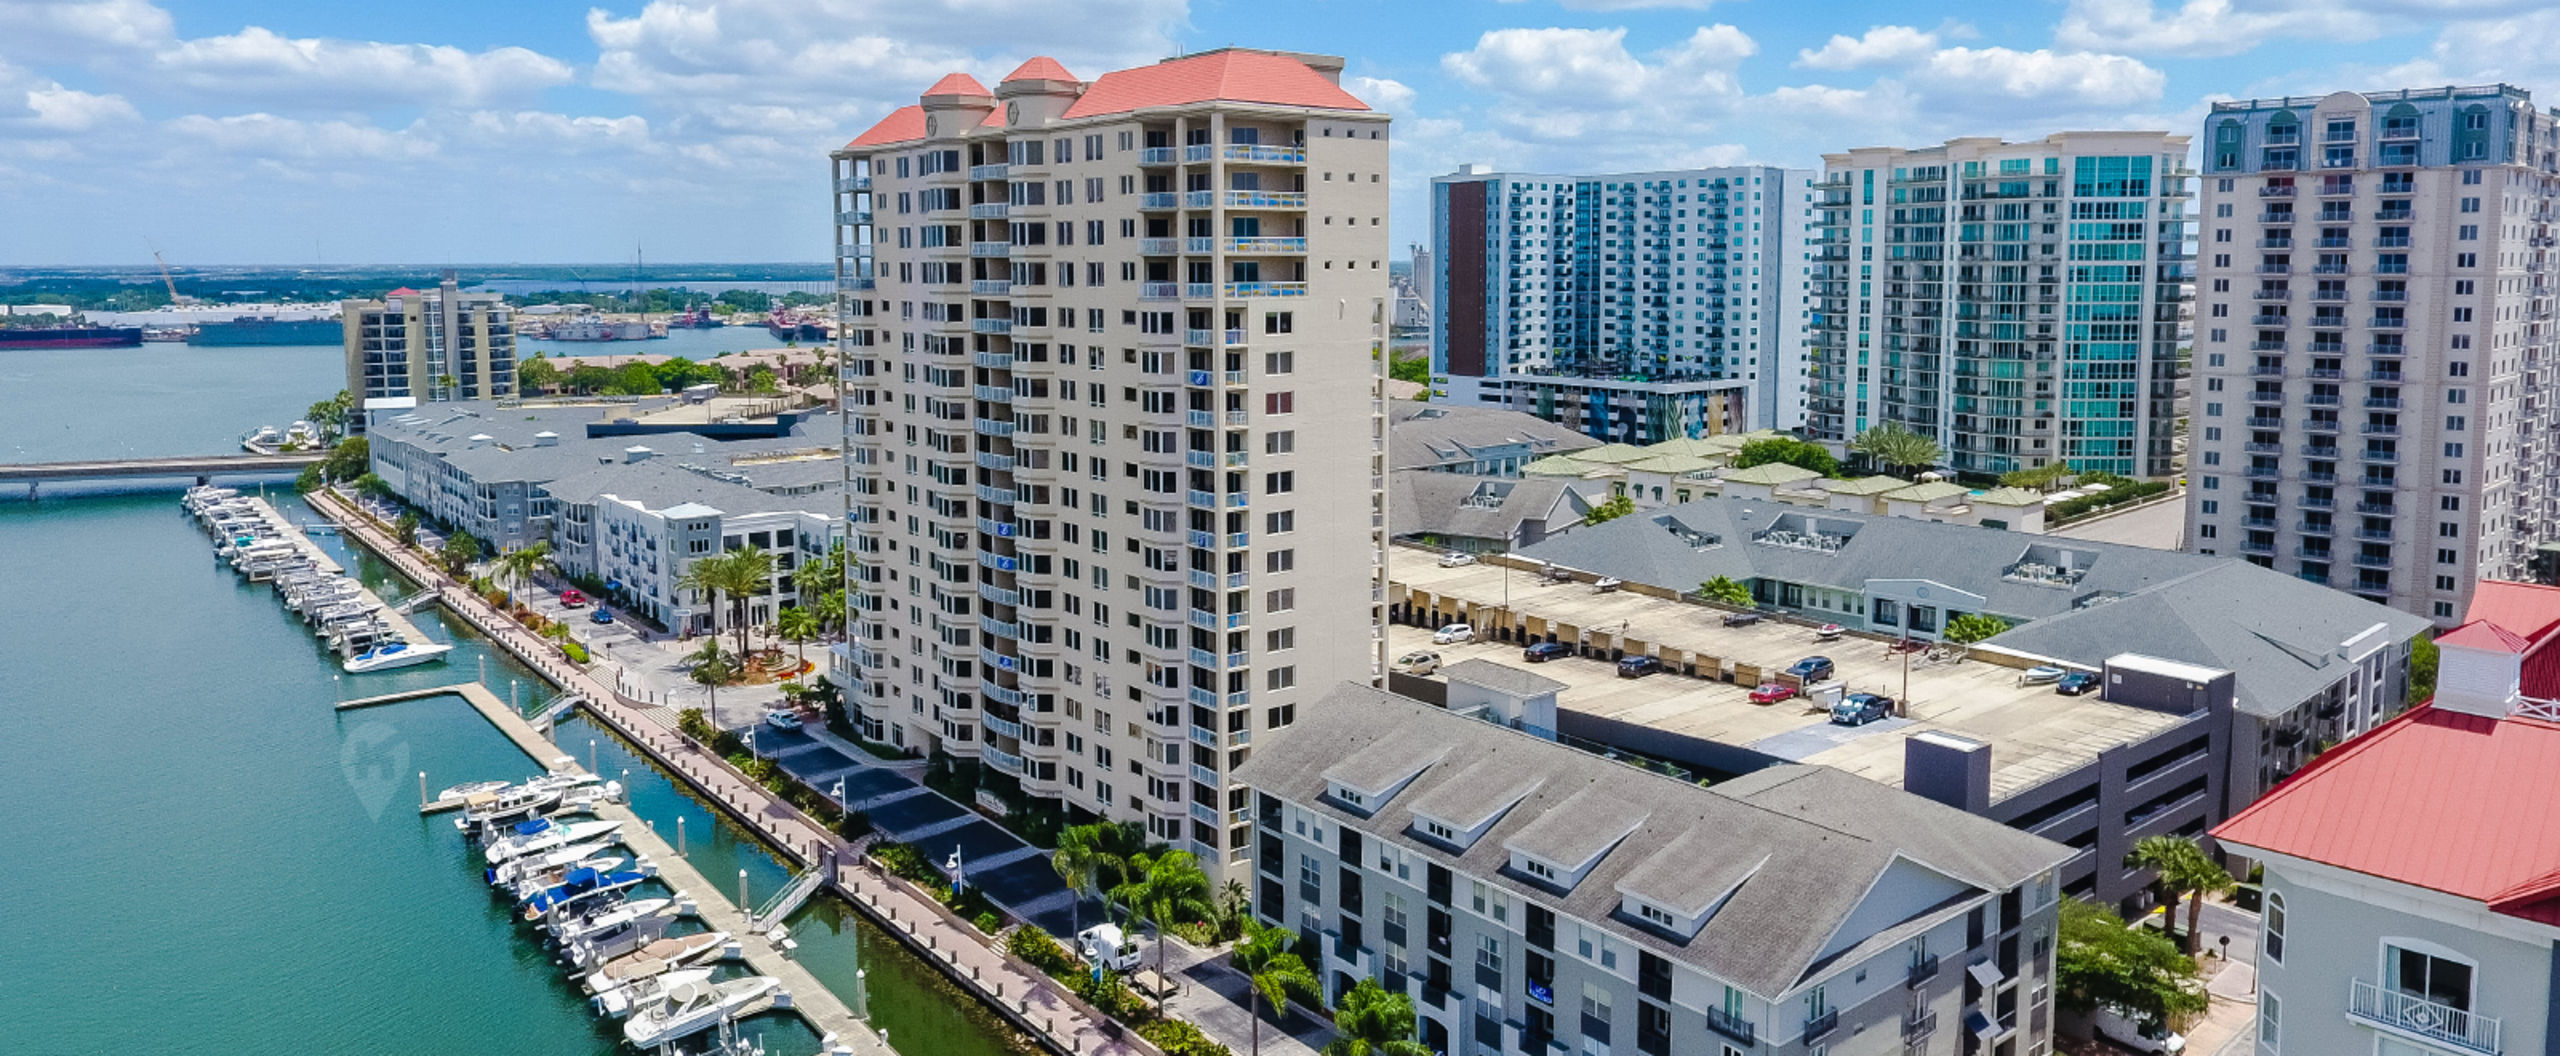 Harbour Island Tampa Homes and Condos